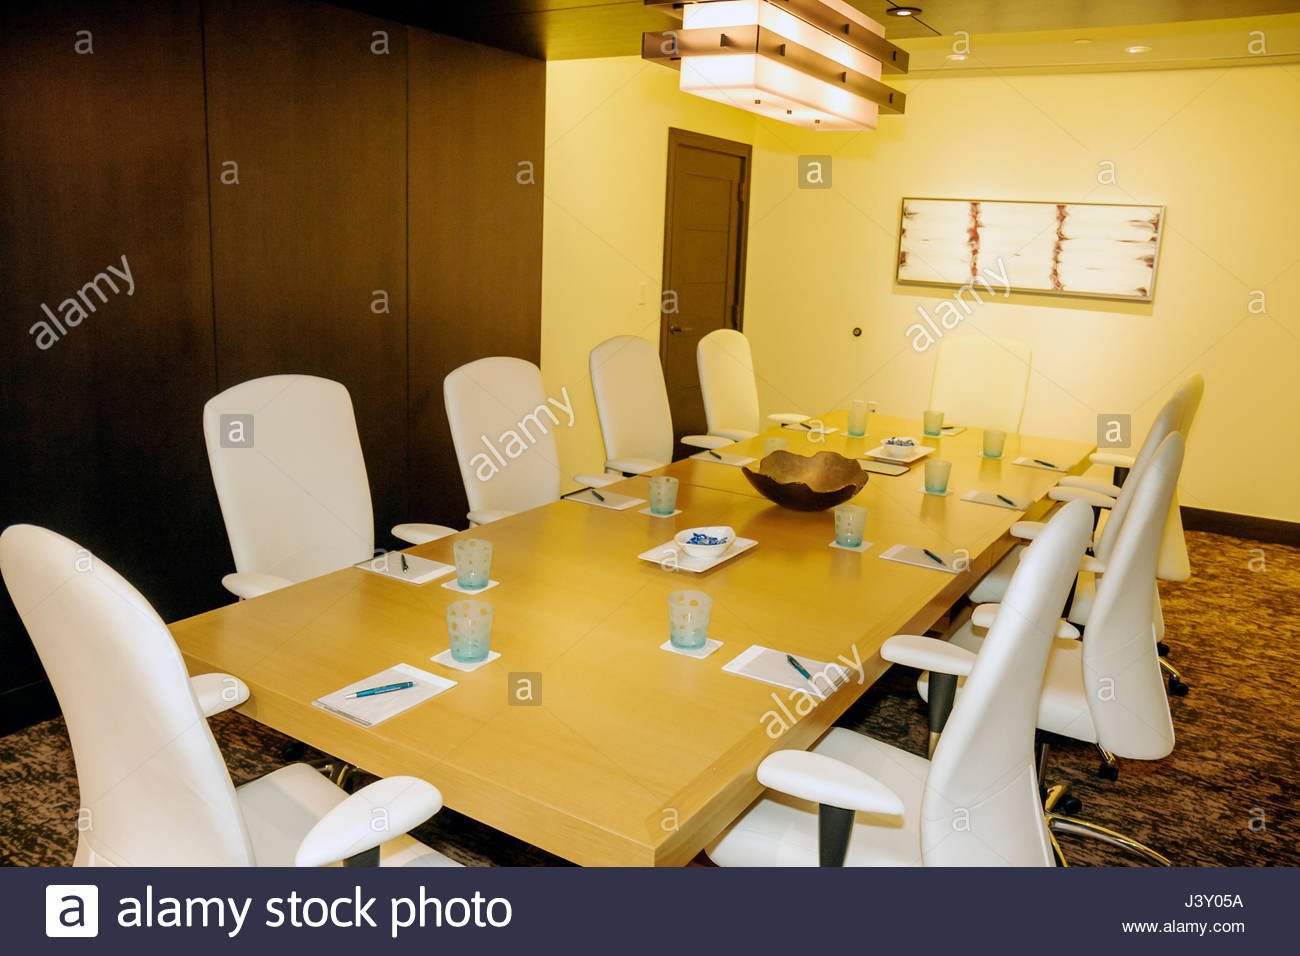 Miami Florida Epic Hotel luxury boutique lodging hospitality conference meeting room decor business office chairs white leather & Miami Florida Epic Hotel luxury boutique lodging hospitality Stock ...